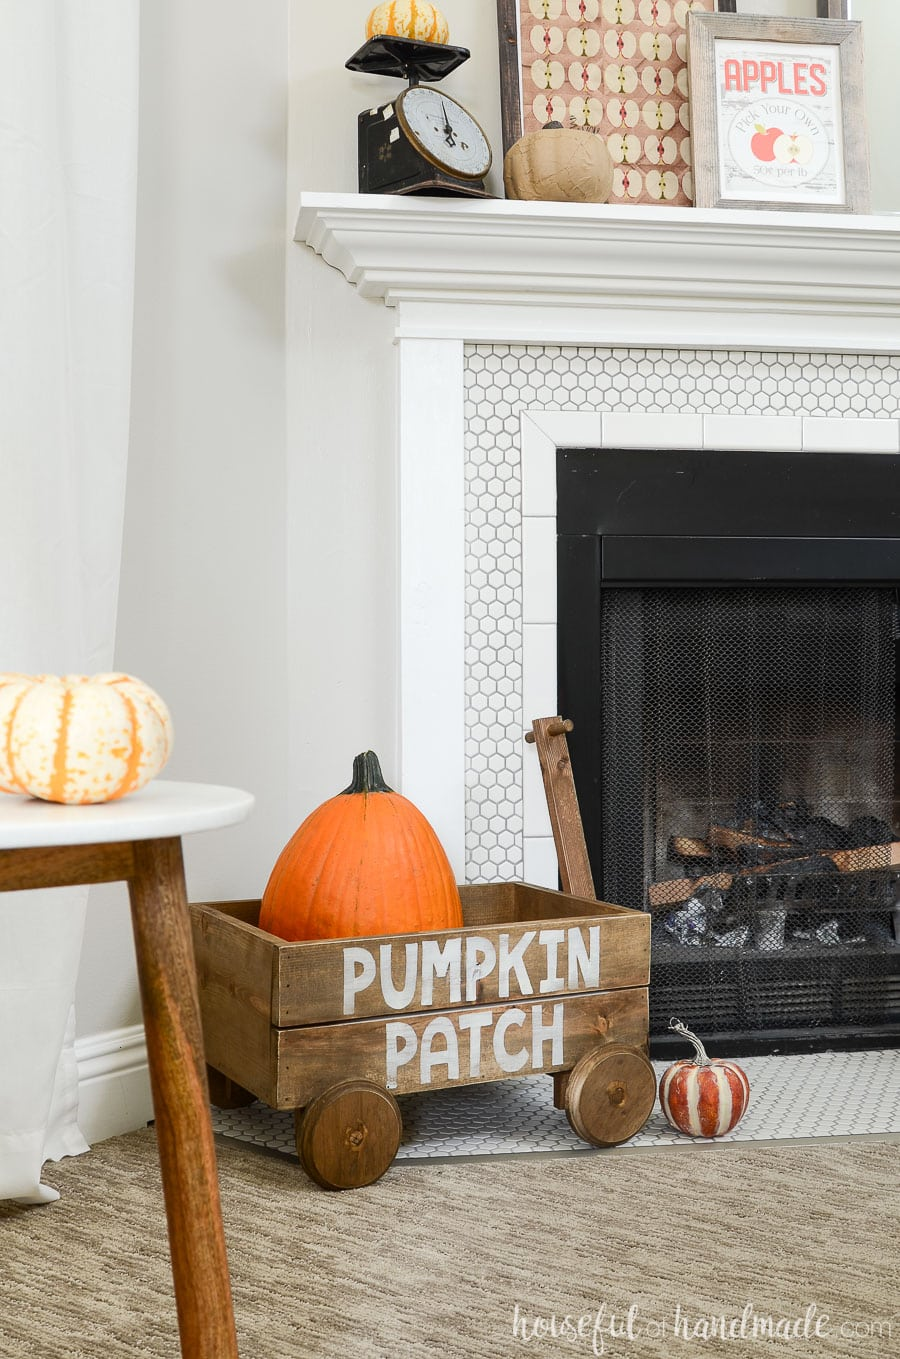 Beautiful fall mantel and fireplace hearth decorated with all your favorite classic fall traditions. This decorative wood wagon is the highlight of the fall decor.